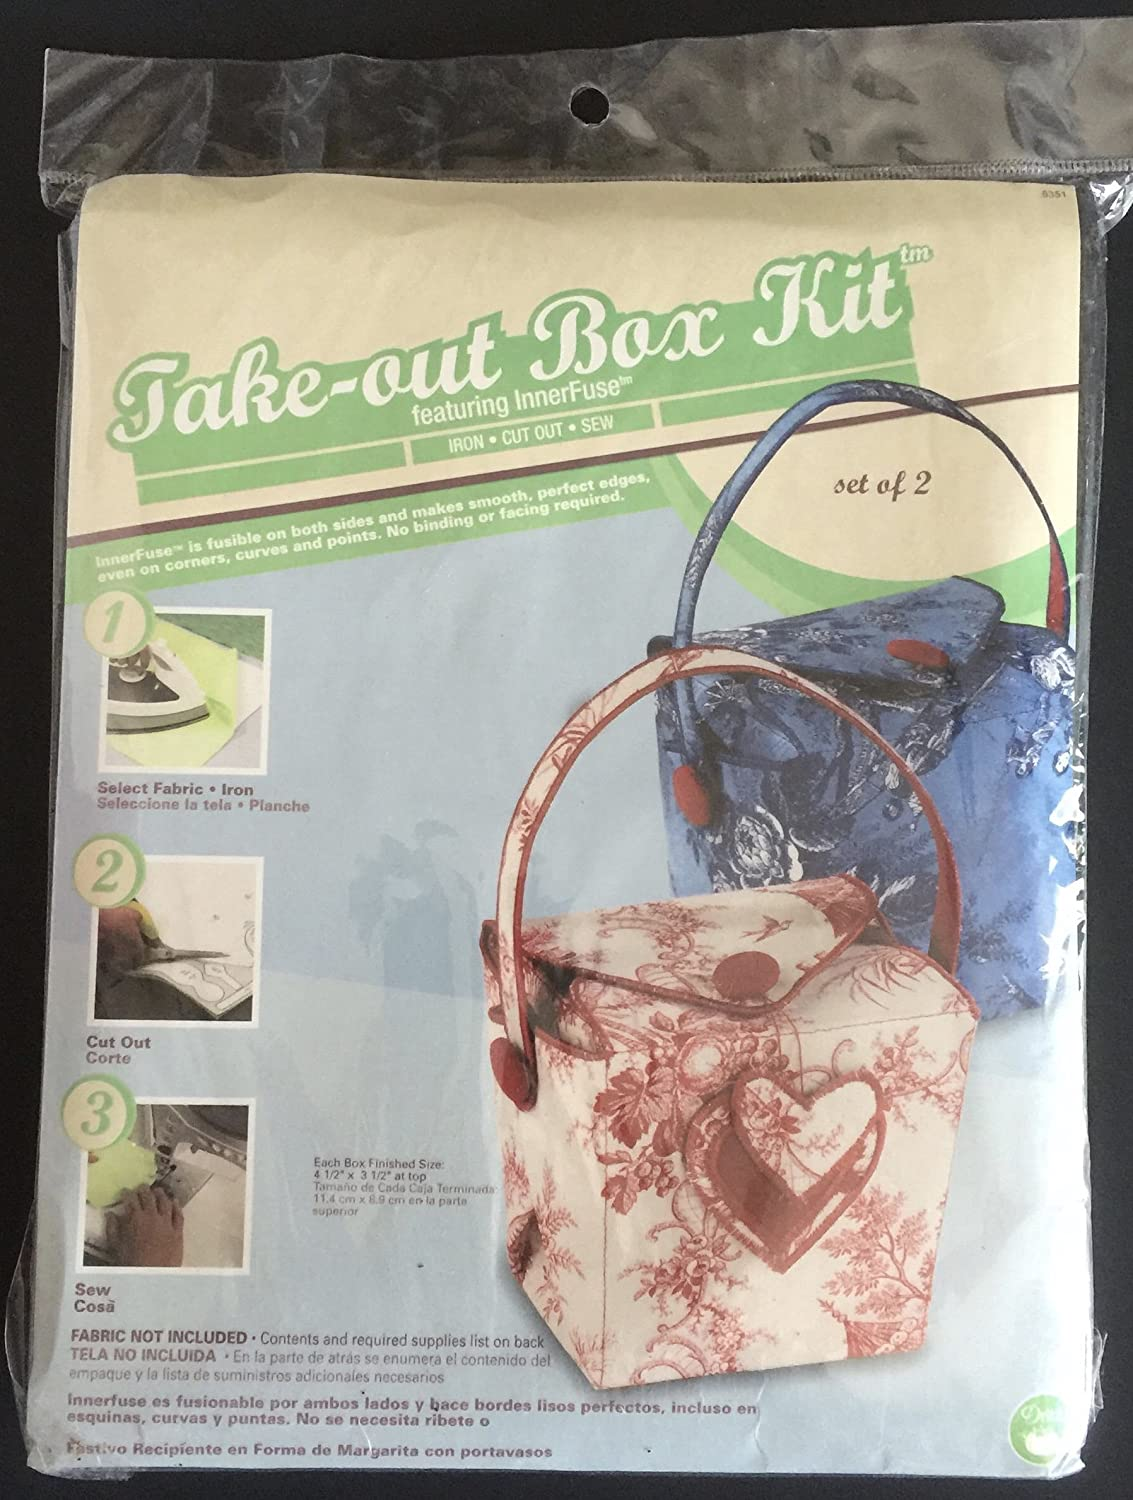 Amazon.com: Take Out Box Kit Featuring InnerFuse